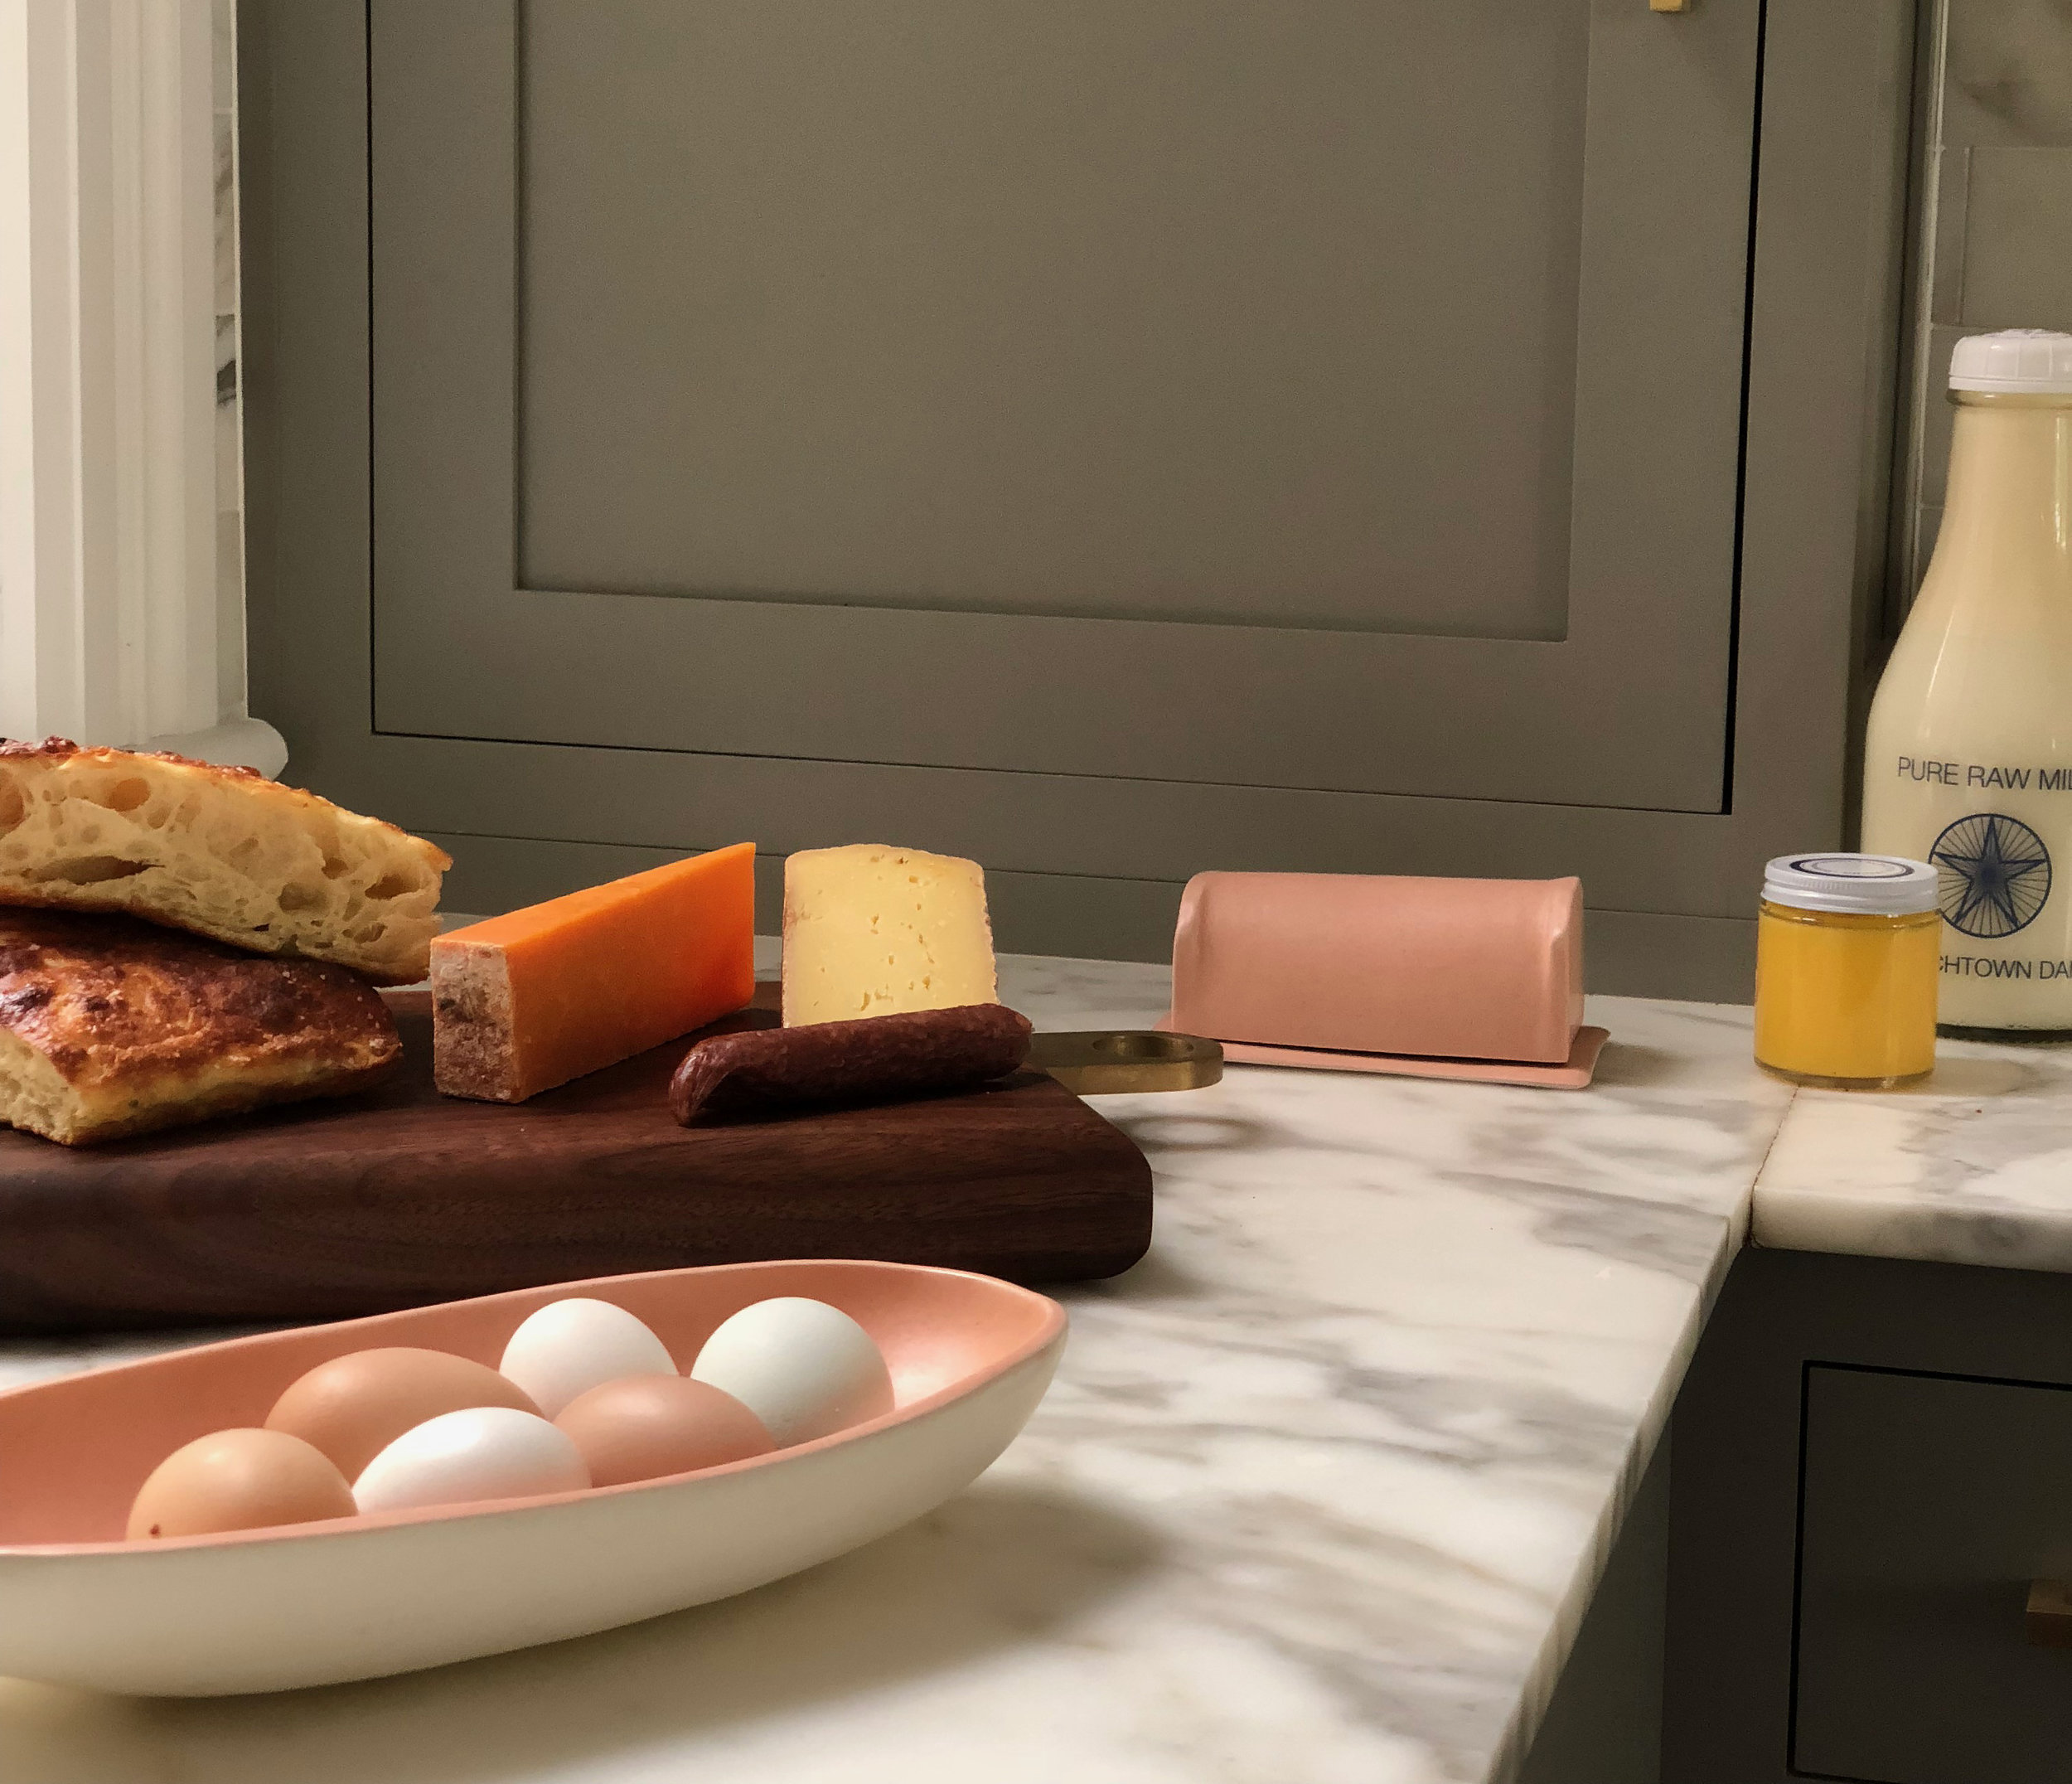 PANTRY - WKND-R will stock your home with perishable and non-perishable goods tailored to each client's needs and personal taste. From a specific light bulb that you always forget to order to the local cheese that you never have time to buy.Stocking fridge with local provisionsArranging and picking up CSAFlowersWine/Alcohol/MixersHousehold Products & Sundries